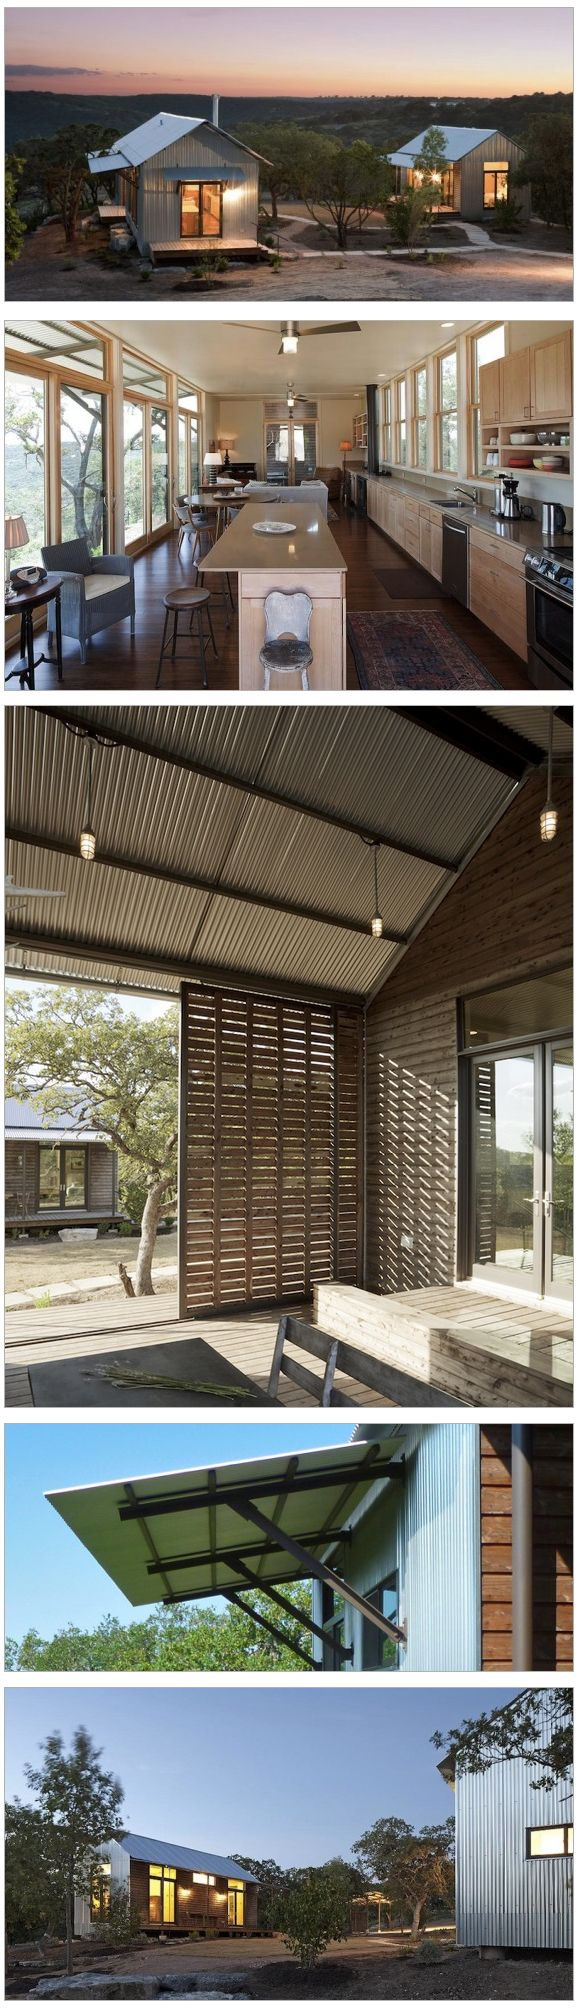 Porch House Prefab by Lake Flato